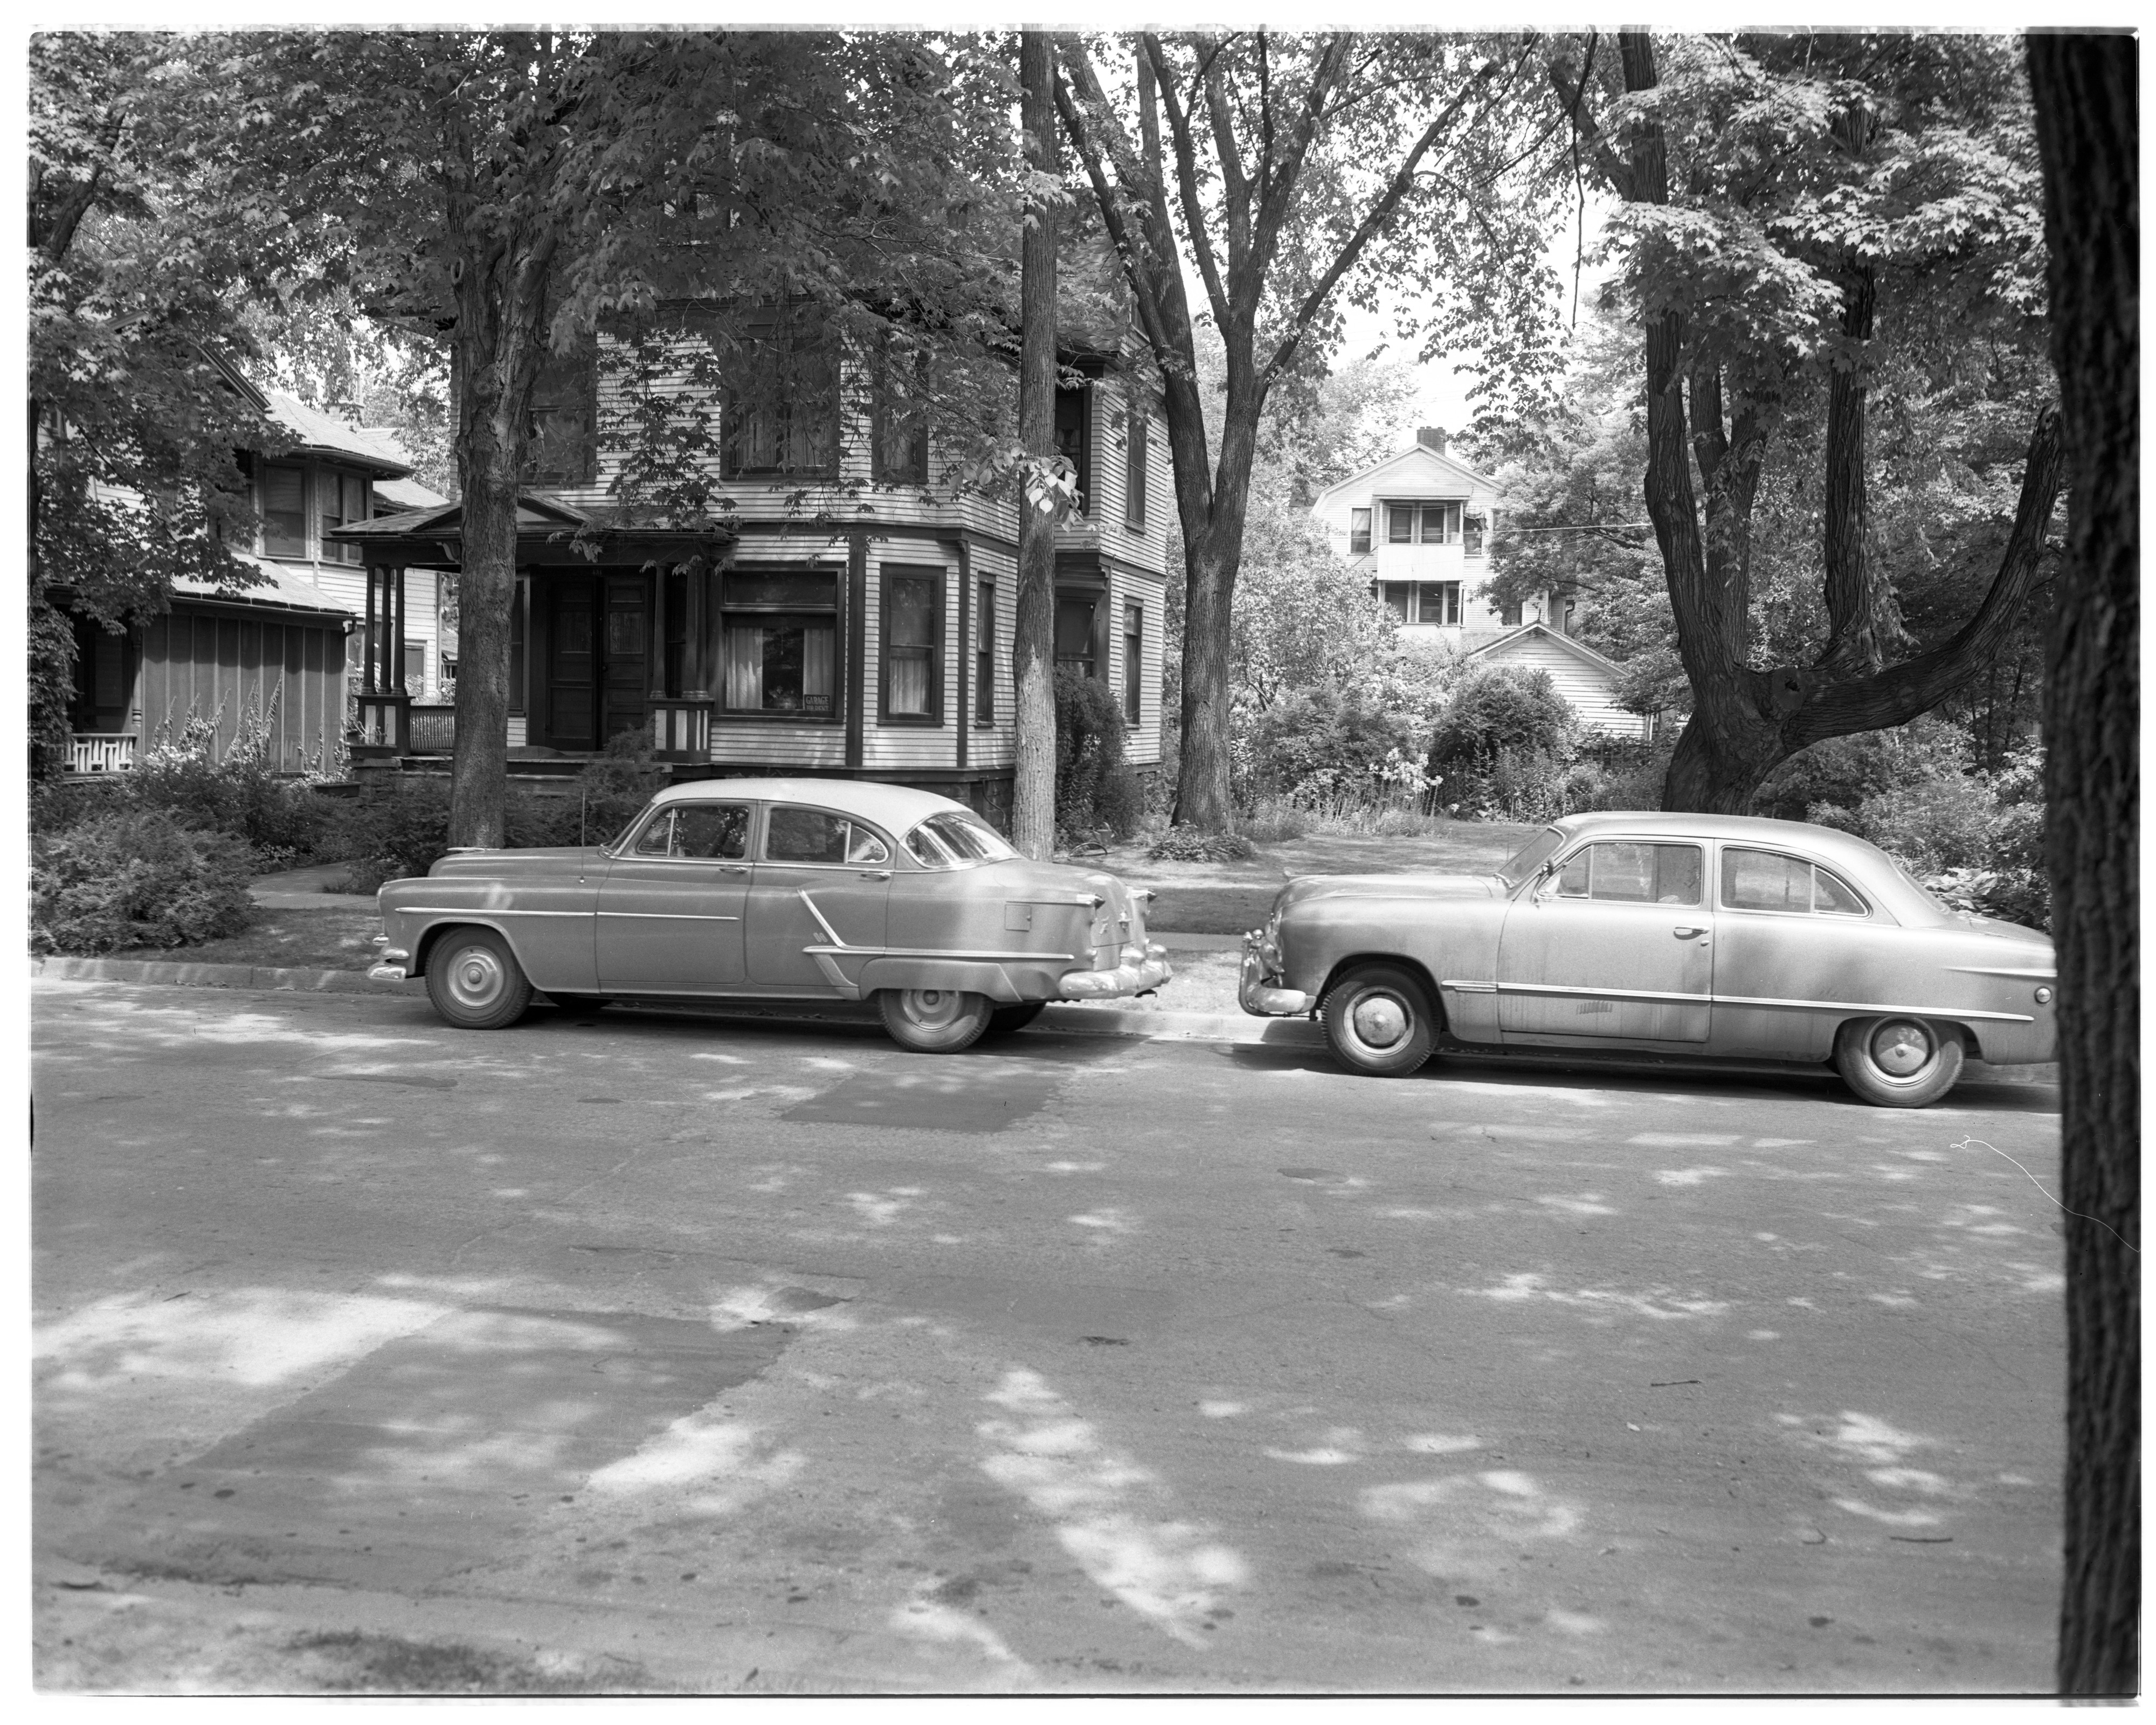 House at 431 Thompson St. on Property Sought by U-M, June 1955 image